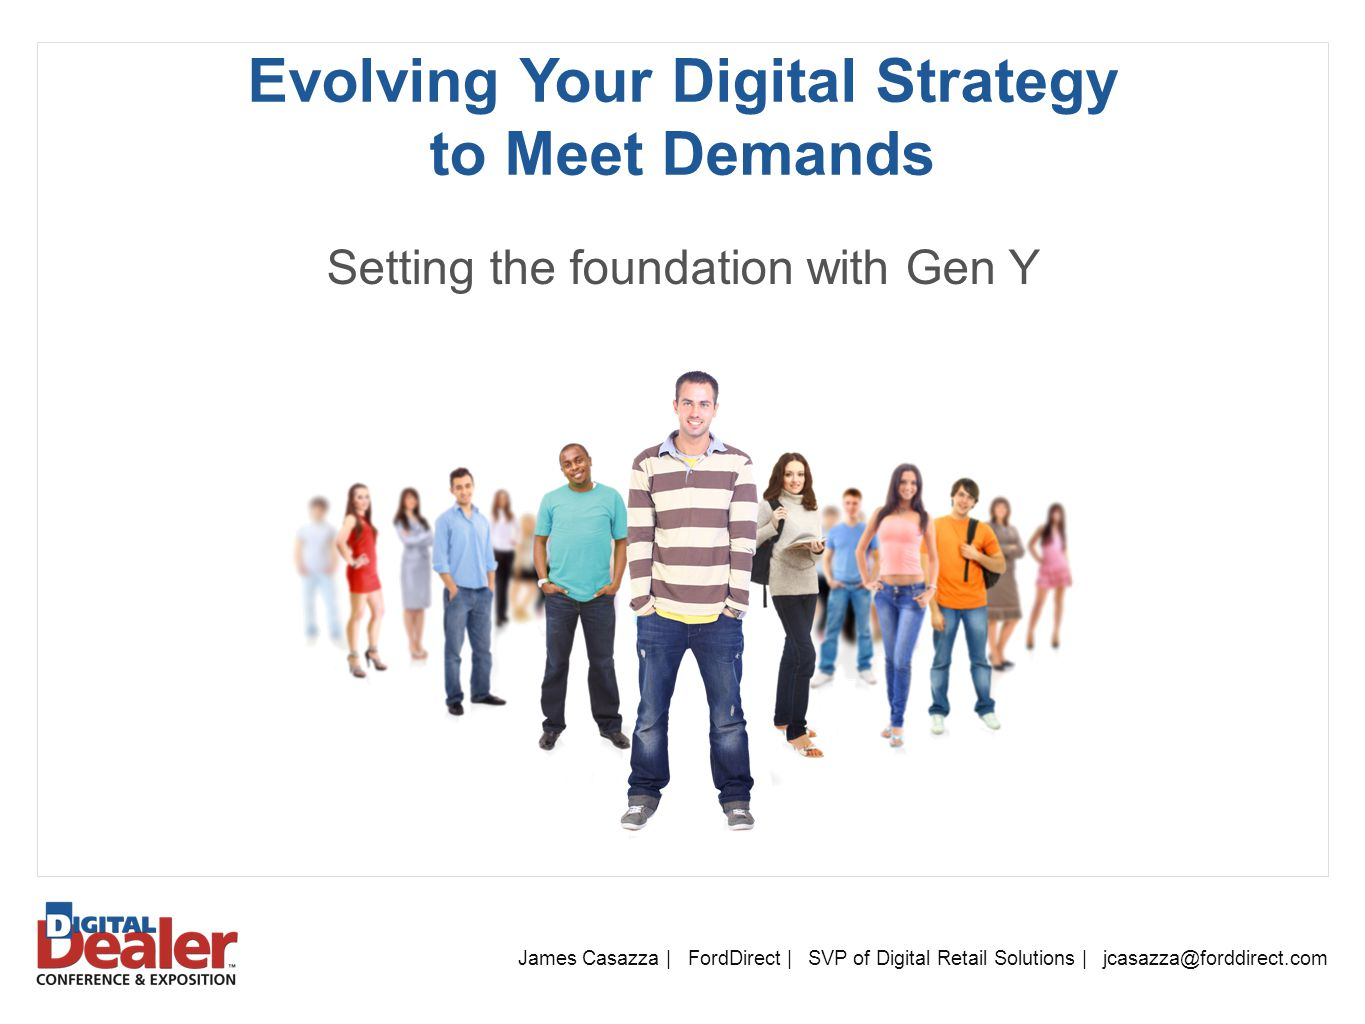 Evolving Your Digital Strategy to Meet Demands James Casazza | FordDirect | SVP of Digital Retail Solutions | jcasazza@forddirect.com Setting the foundation with Gen Y